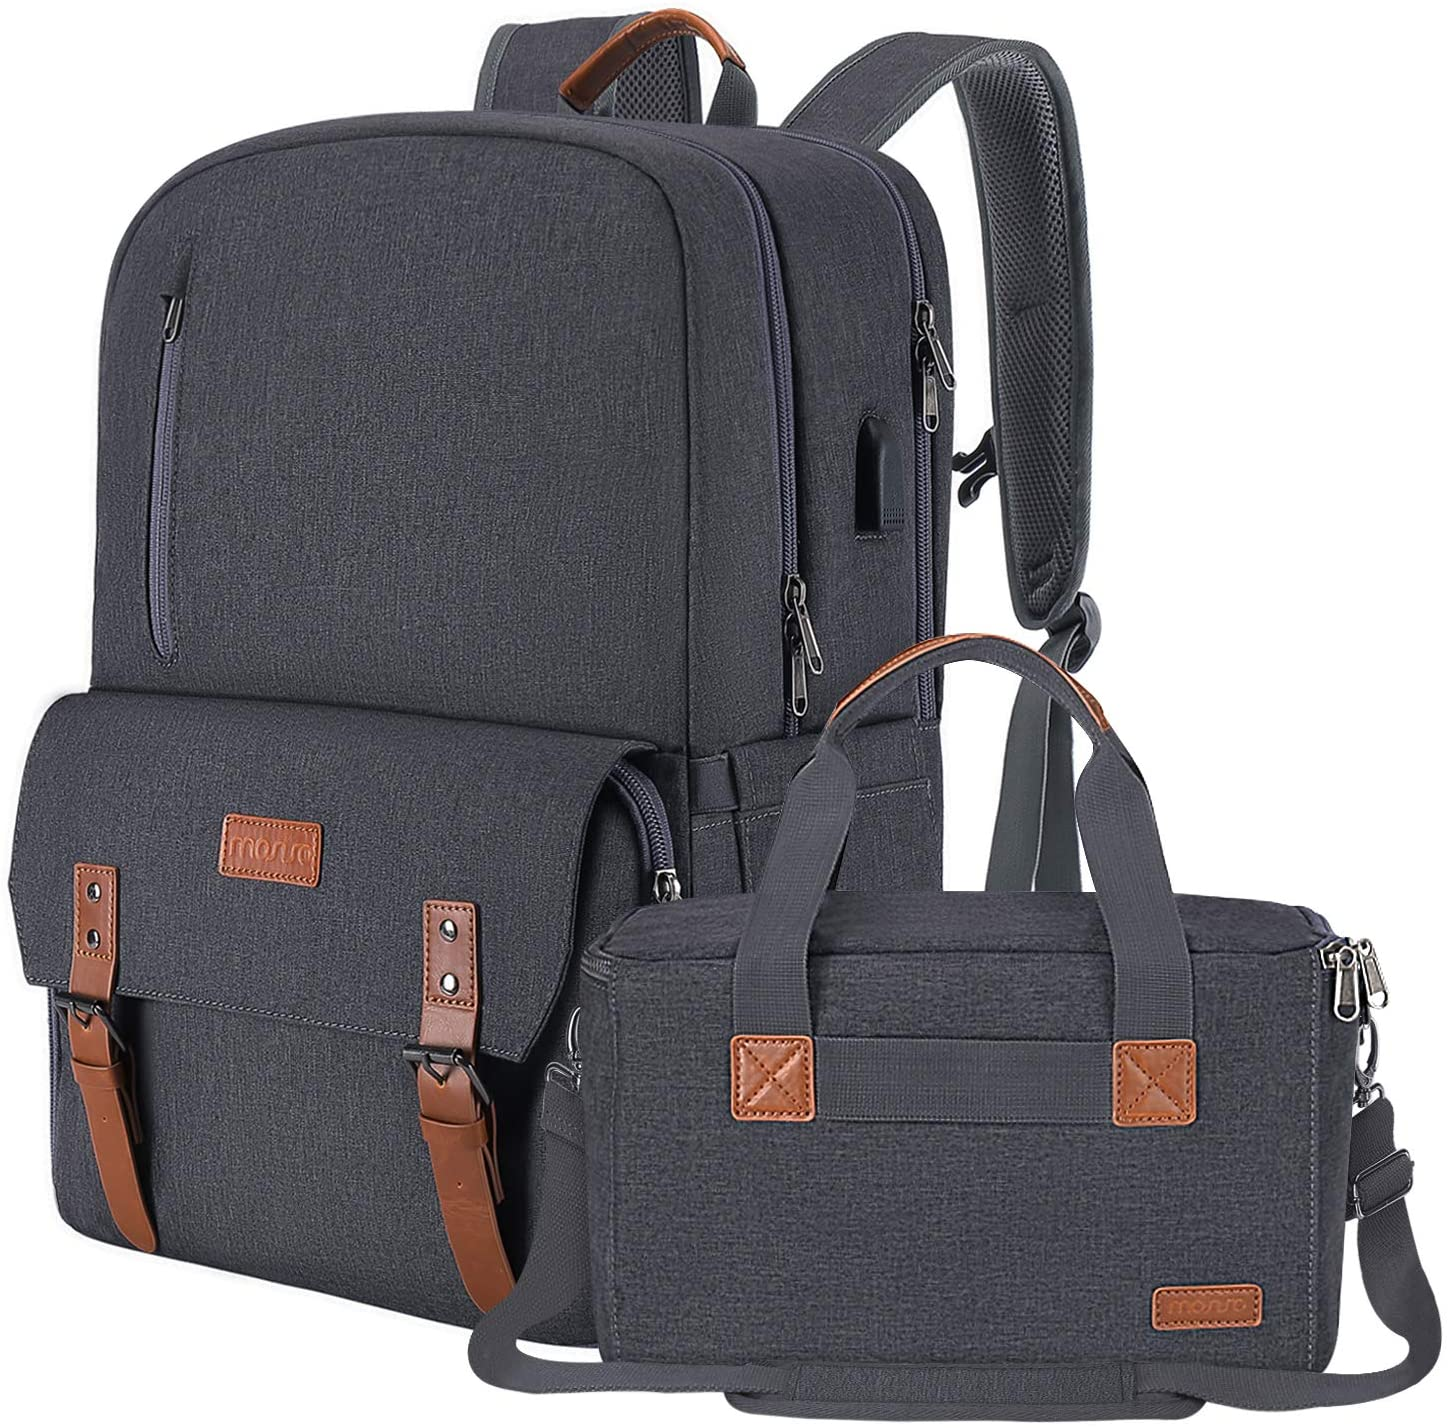 MOSISO Camera Backpack 17.3 inch, DSLR/SLR/Mirrorless Case with Laptop Compartment&Built-in Photography Insert Bag&USB-Charging Port&Rain Cover Compatible with Canon/Nikon/Sony/MacBook, Space Gray